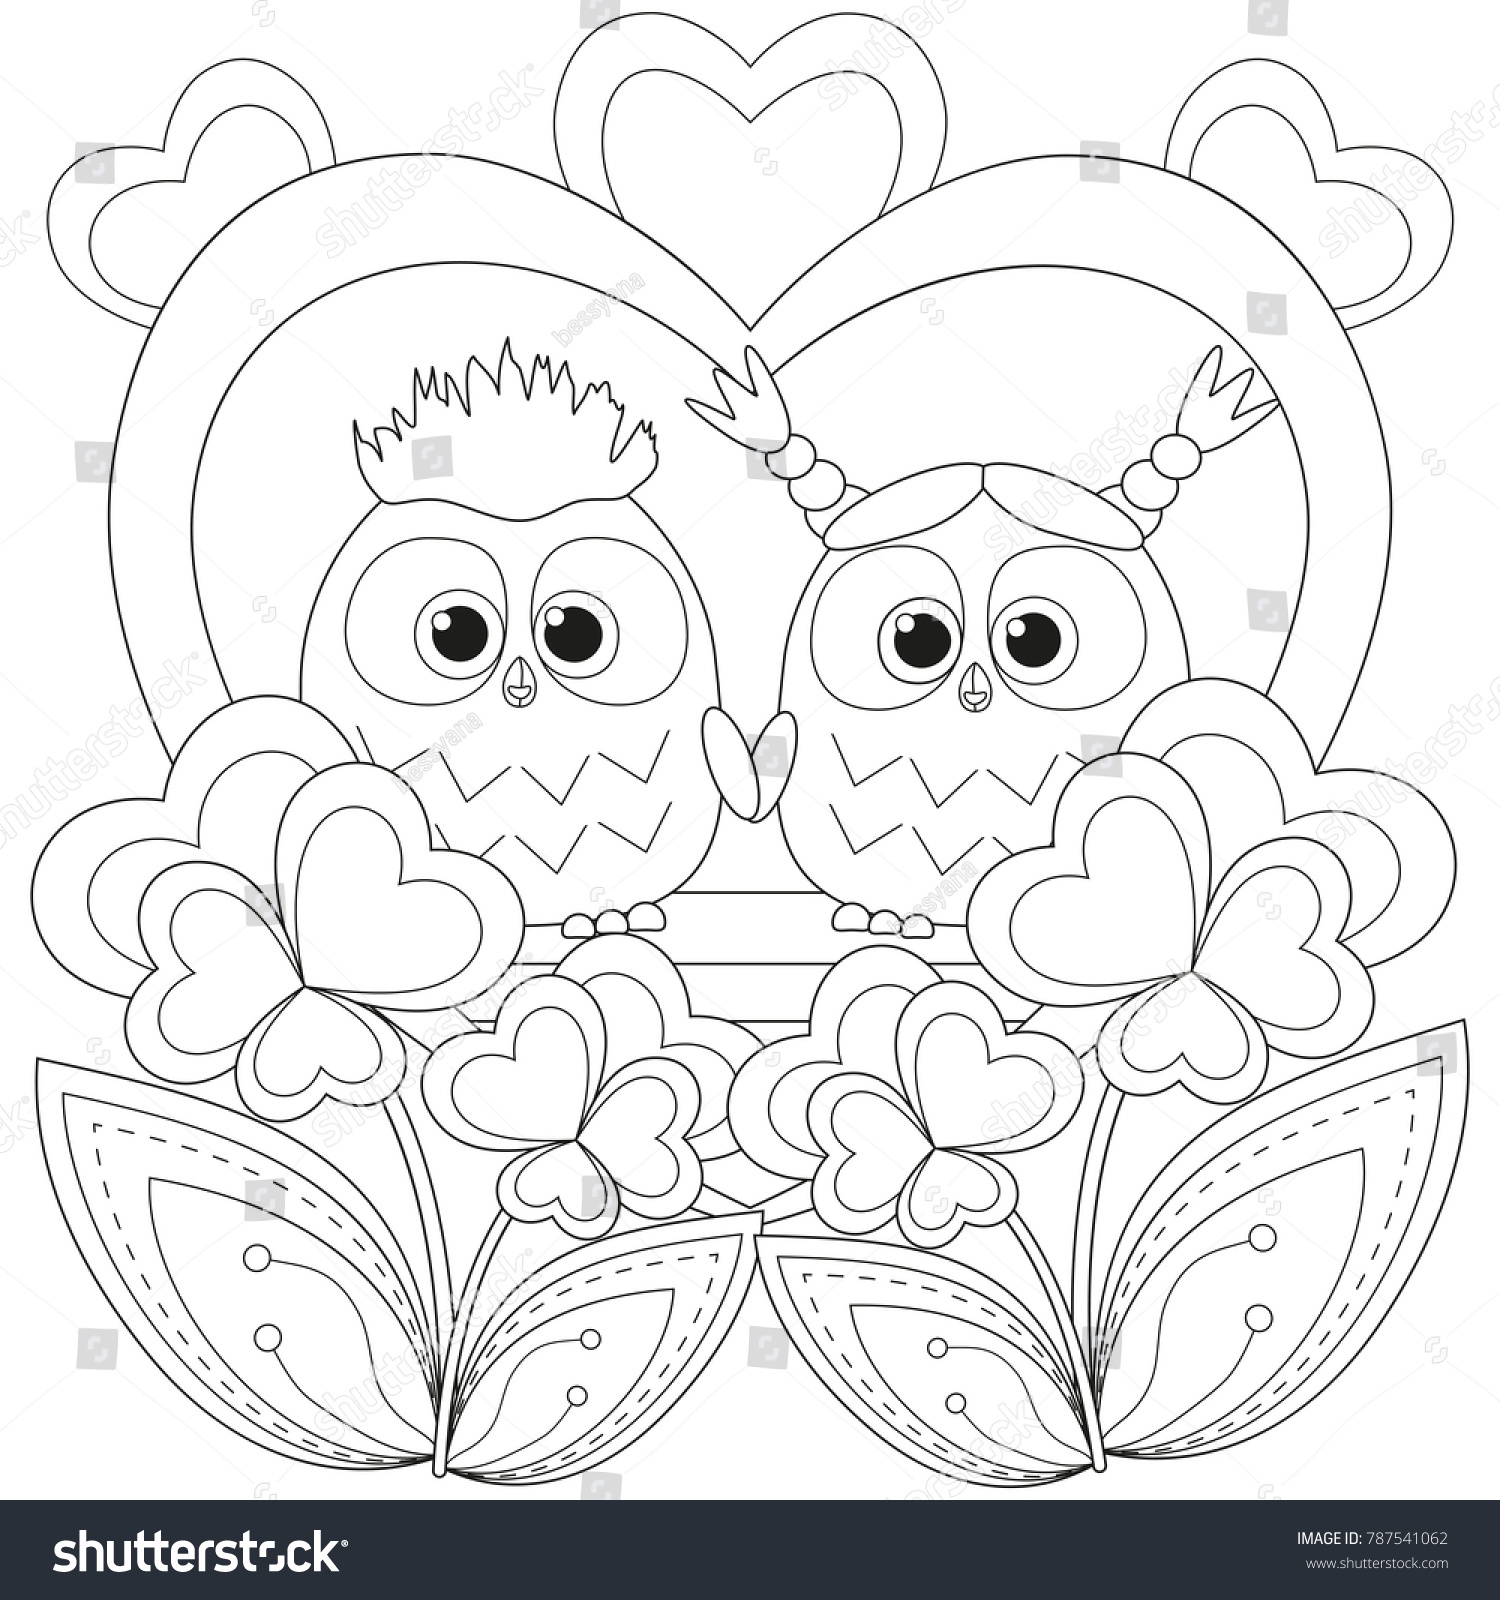 Valenitne Coloring Pages at GetDrawings.com | Free for personal use ...